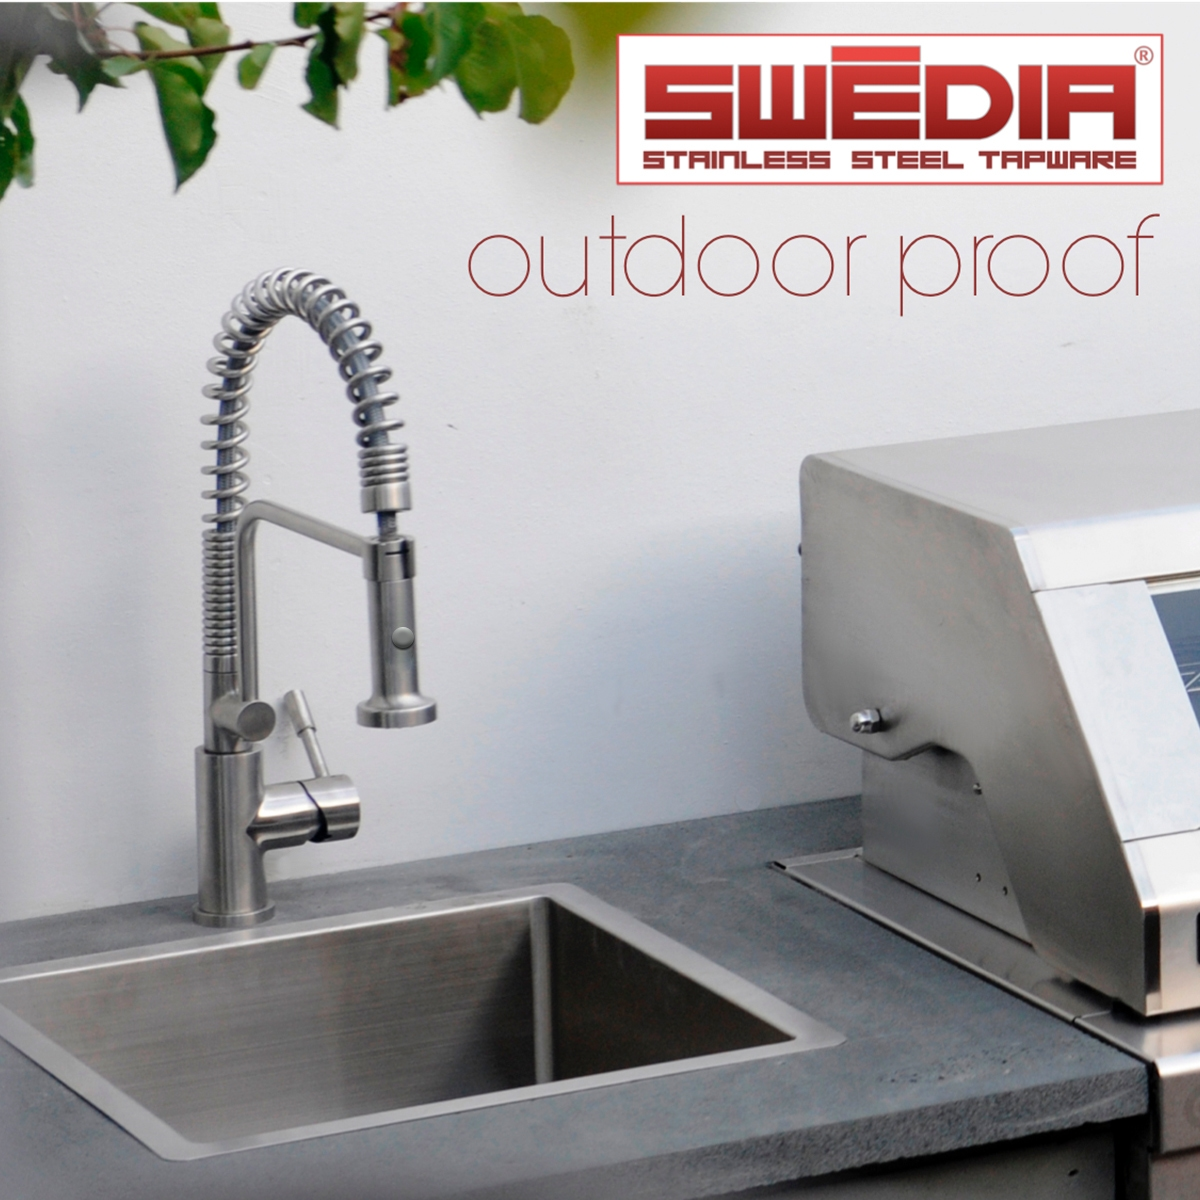 outdoor kitchen tap that will not rust